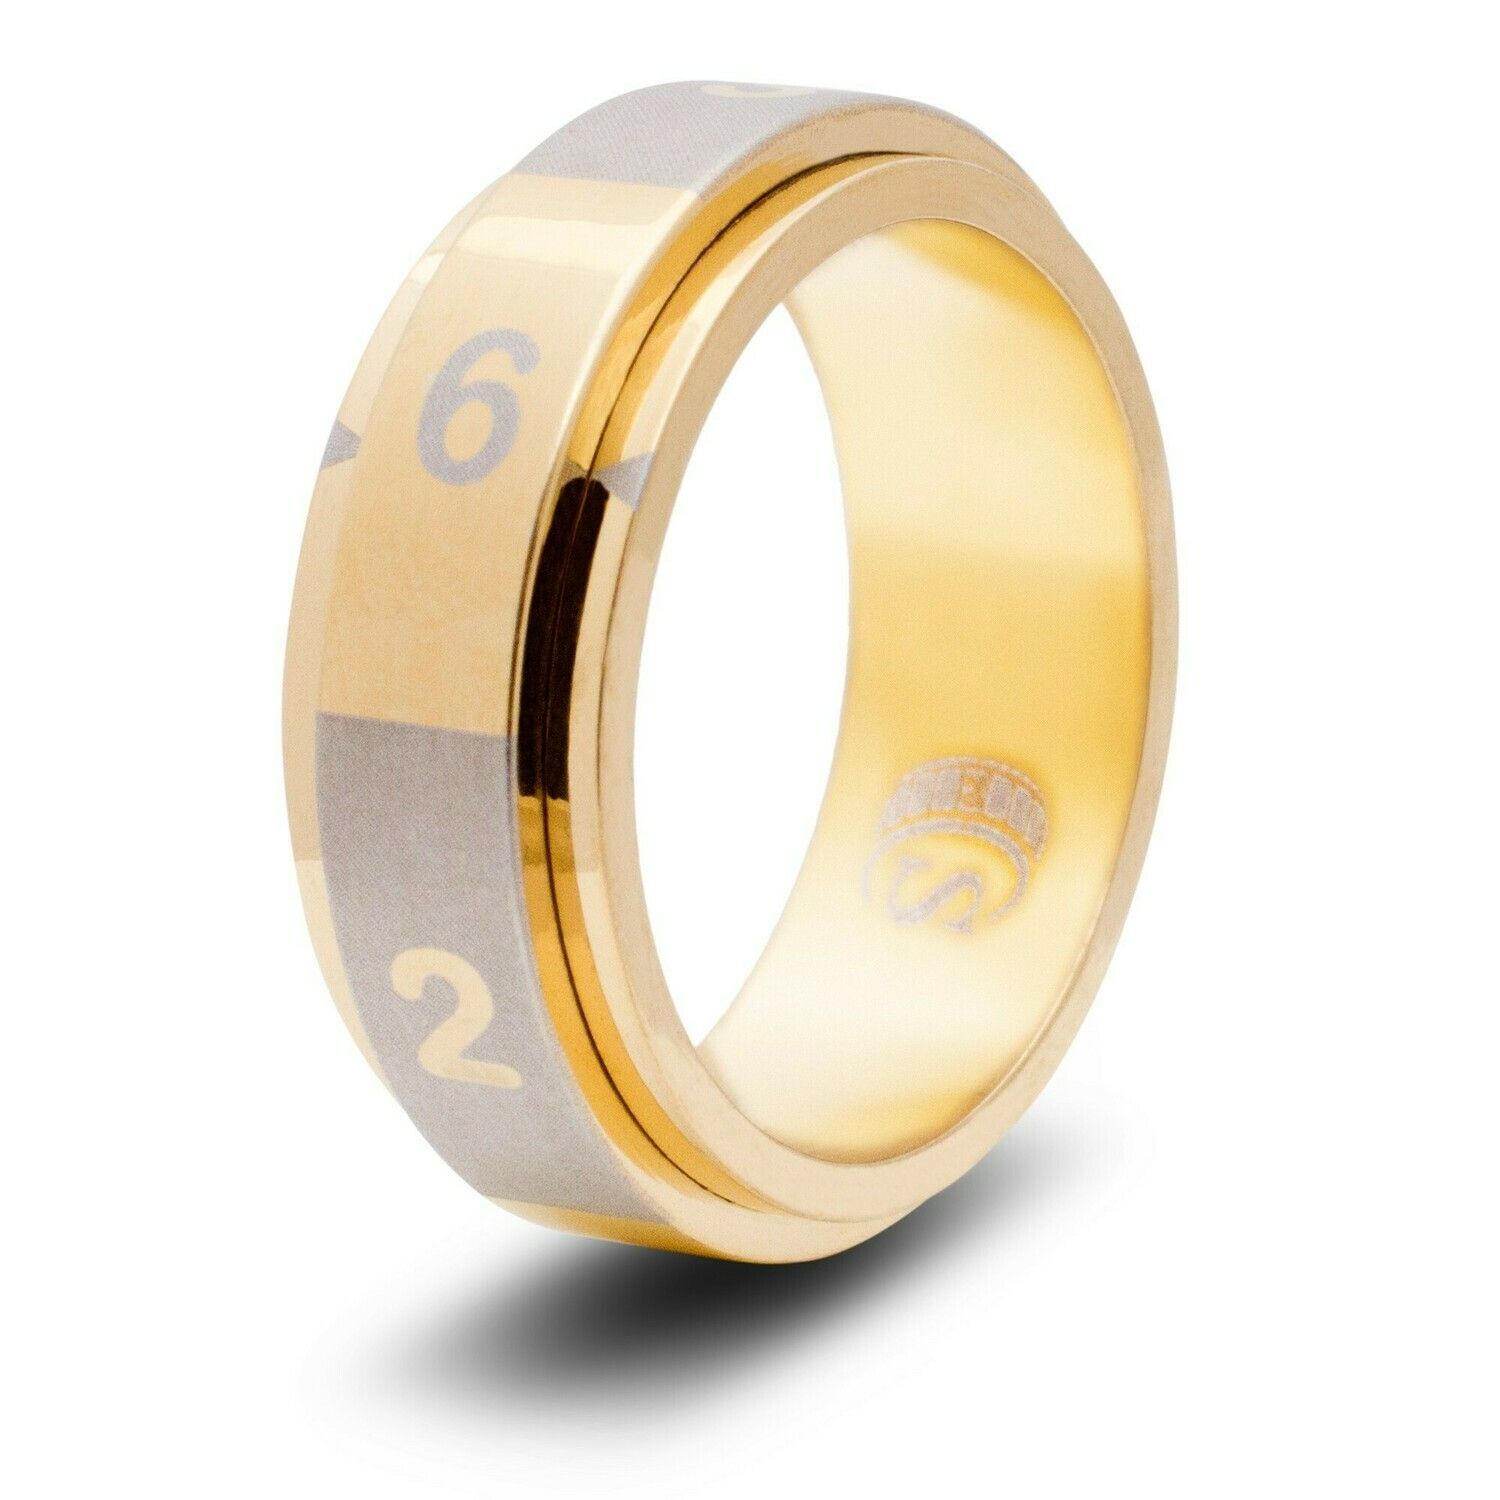 6-sided (d6) Dice Random Number Spinner Ring